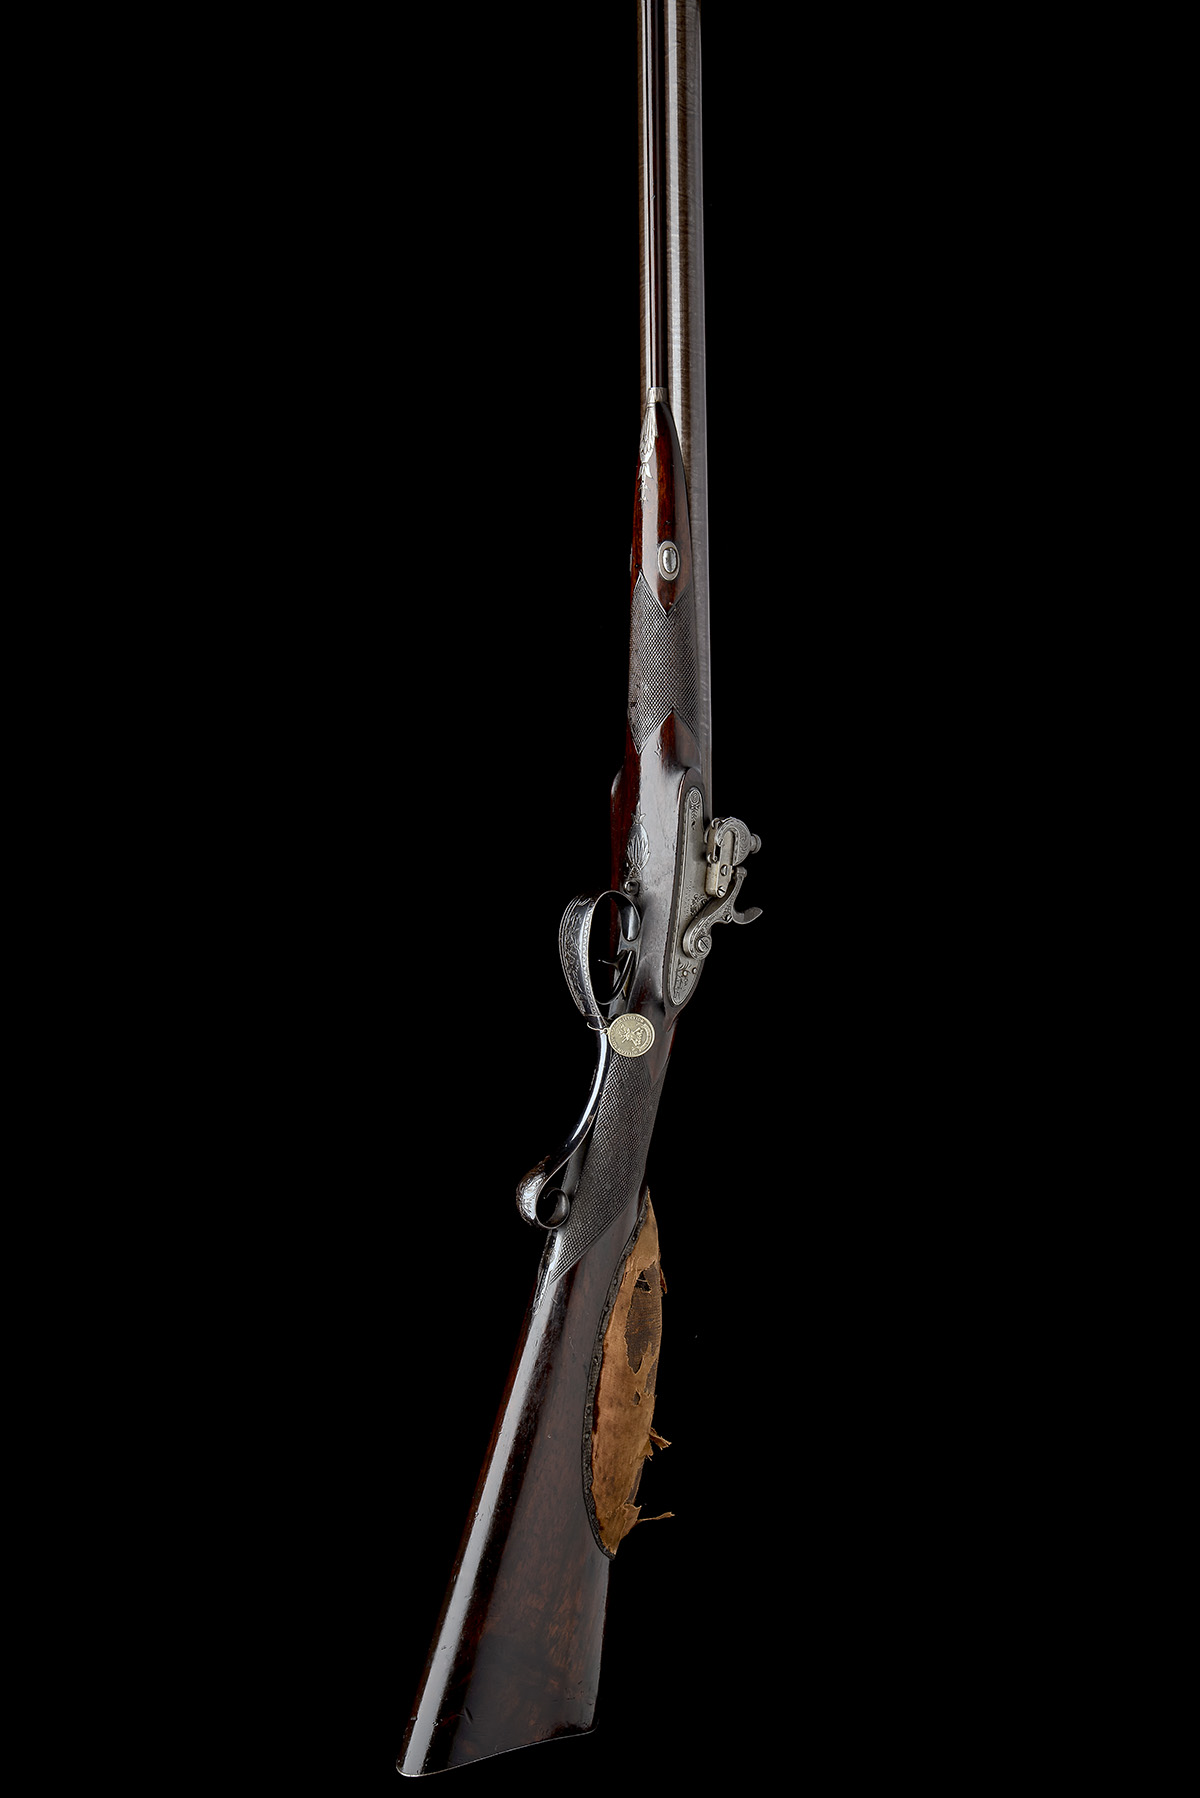 EX W. KEITH NEAL: FORSYTH & CO., LONDON AN EXCEEDINGLY RARE 19-BORE SELF-PRIMING SPORTING GUN, - Image 17 of 21